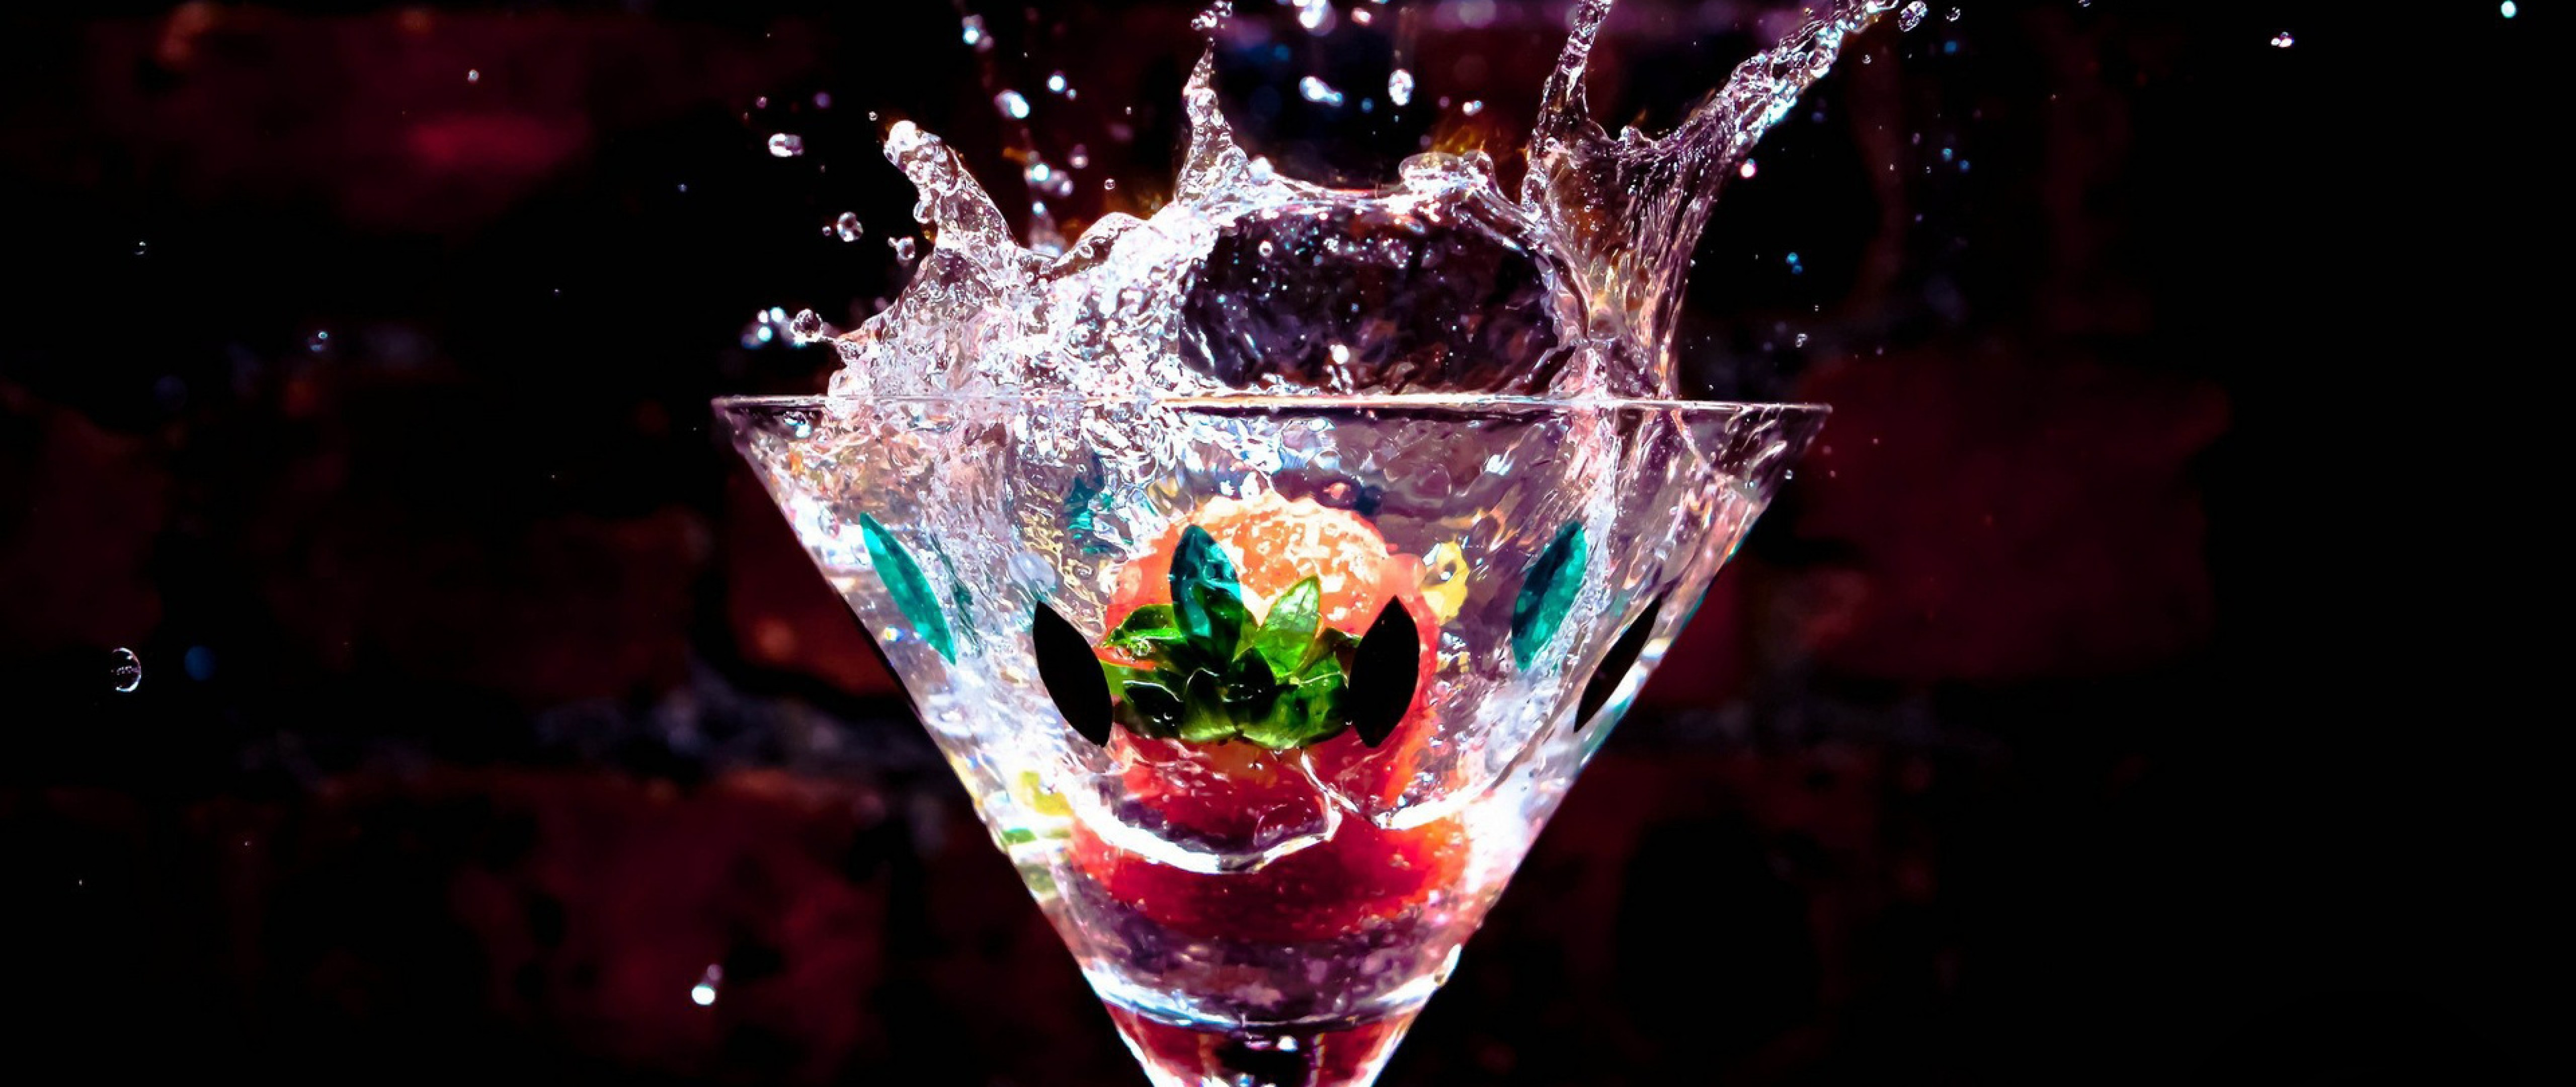 Drink Splash Hd Wallpaper for Desktop and Mobiles